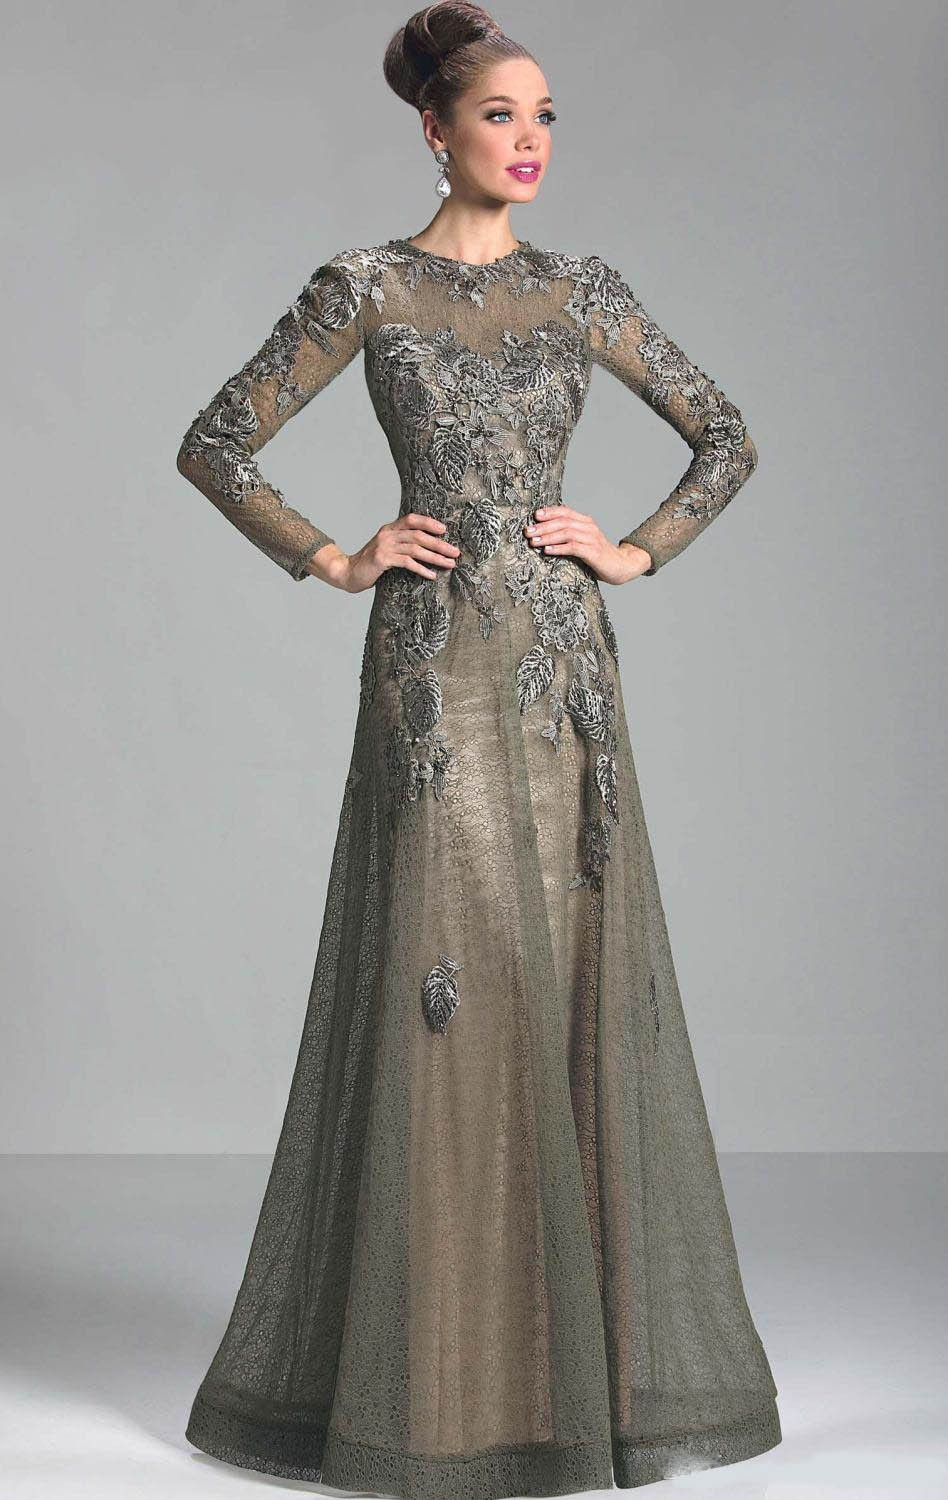 Long Sleeves 2019 Mother Of The Bride Dresses A-line Tulle Appliques Lace Plus Size Long Groom Mother Dresses For Weddings